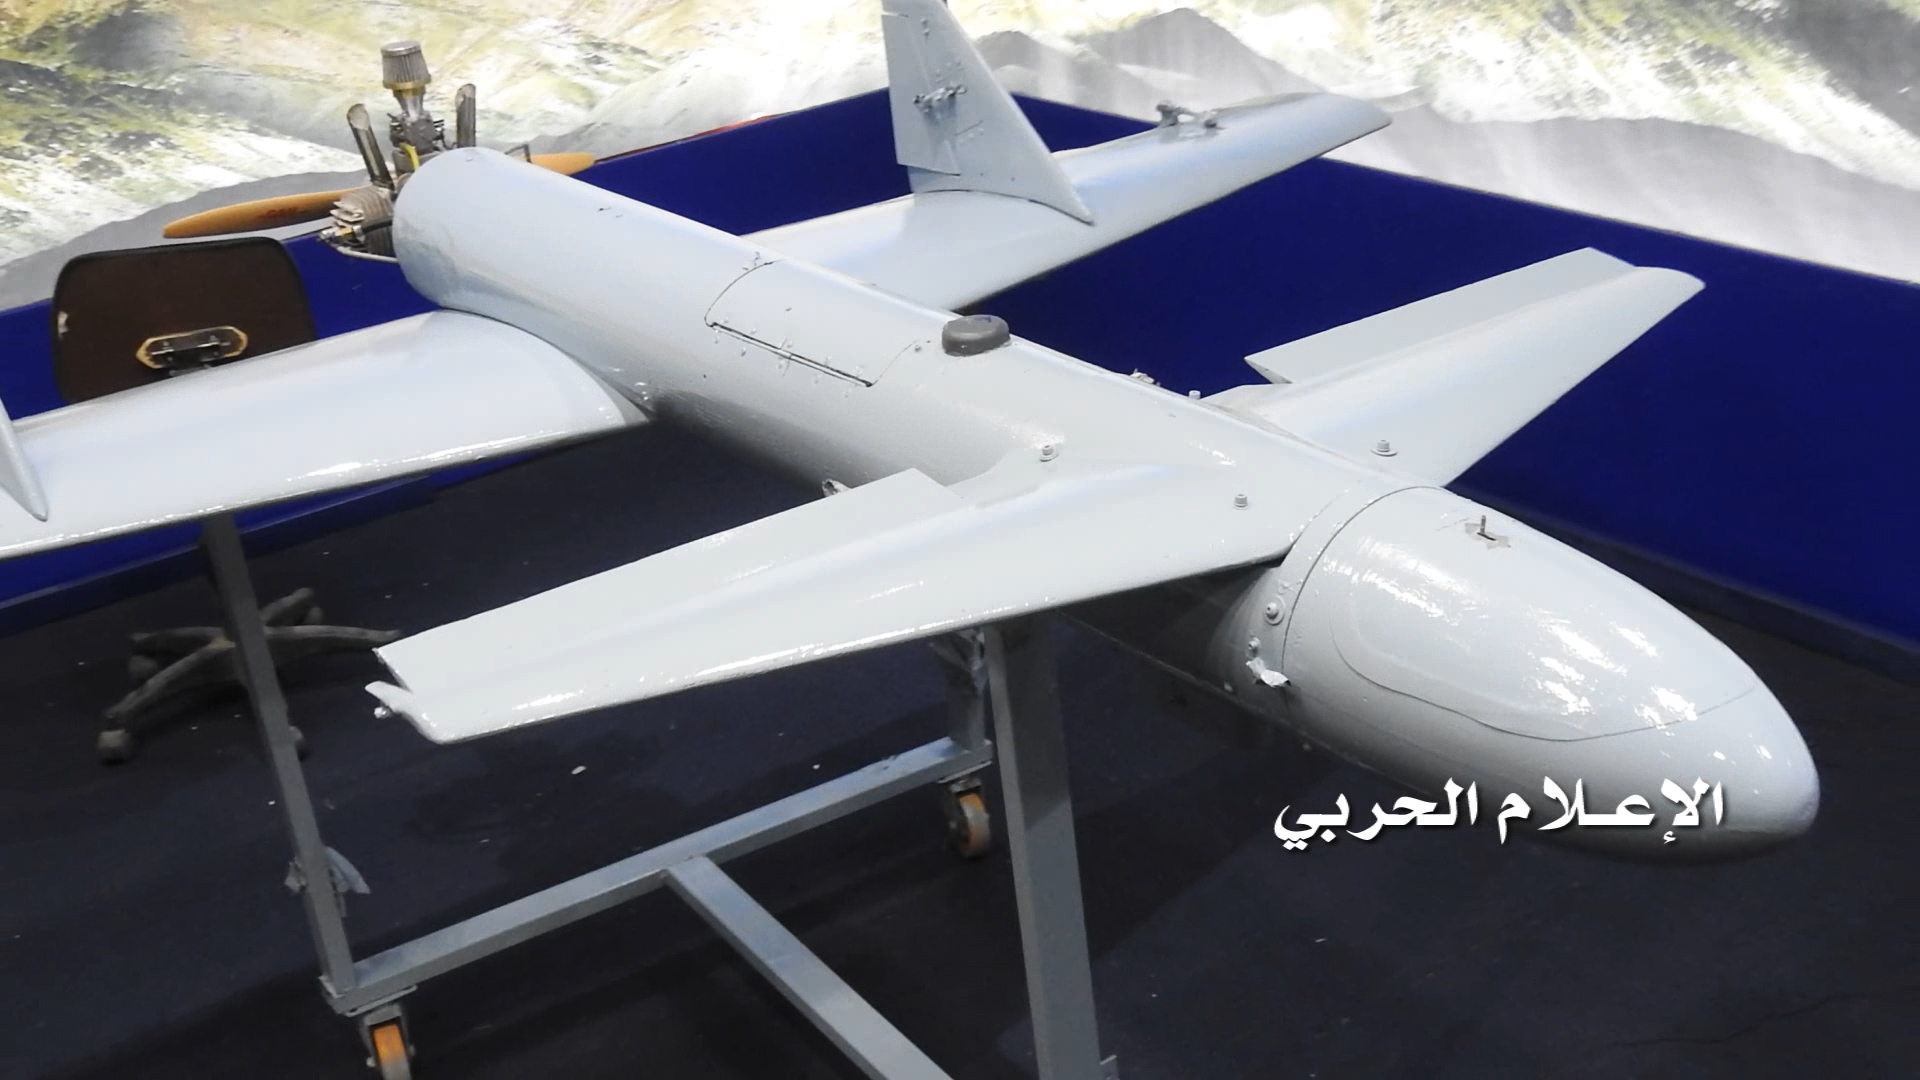 Houthis Attack Saudi-led Coalition Troops With Two Suicide Drones